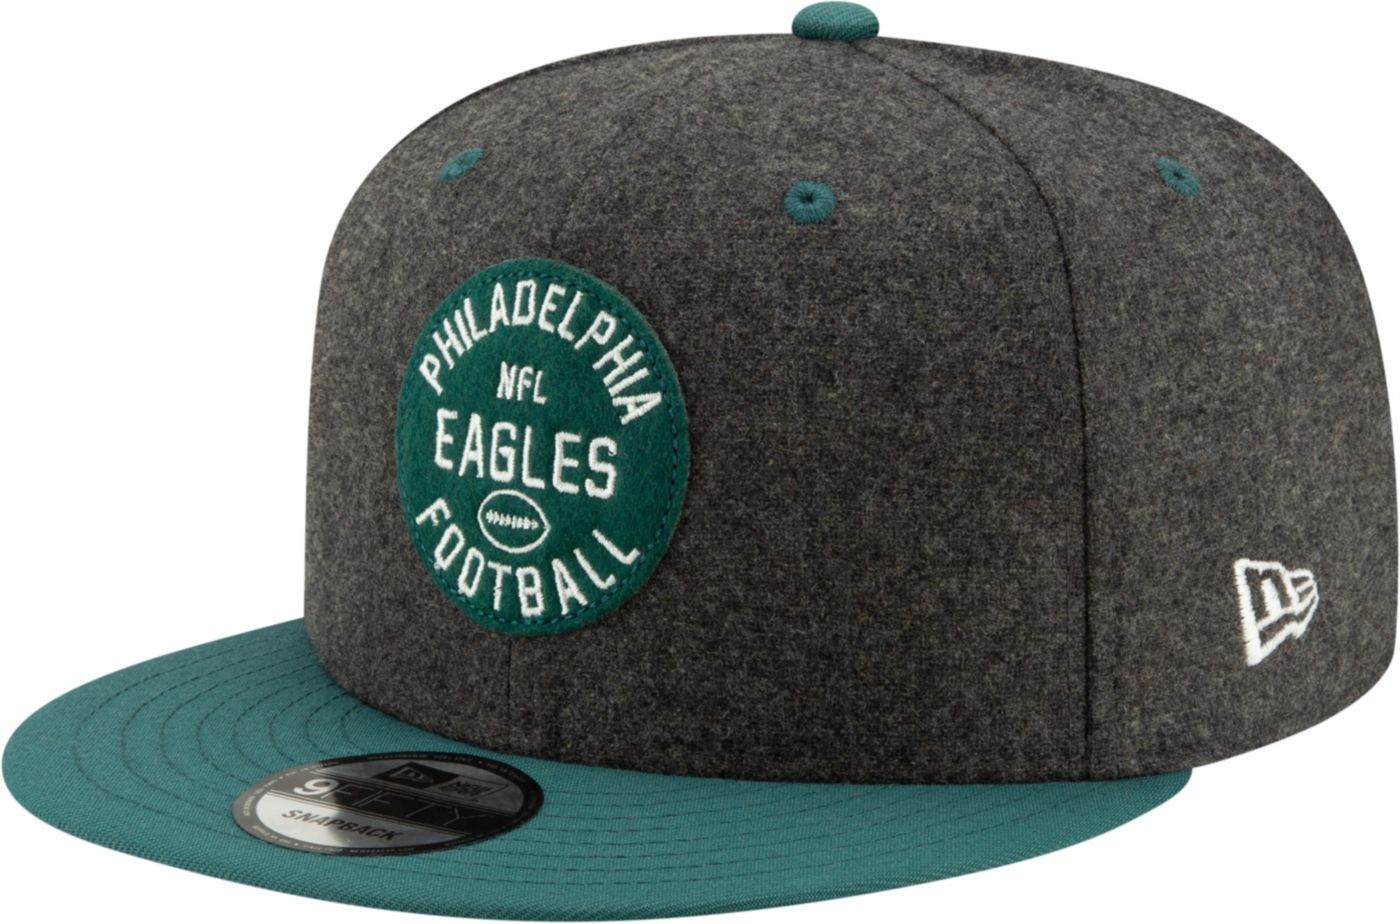 New Era Men's Philadelphia Eagles Sideline Home 9Fifty Adjustable Hat